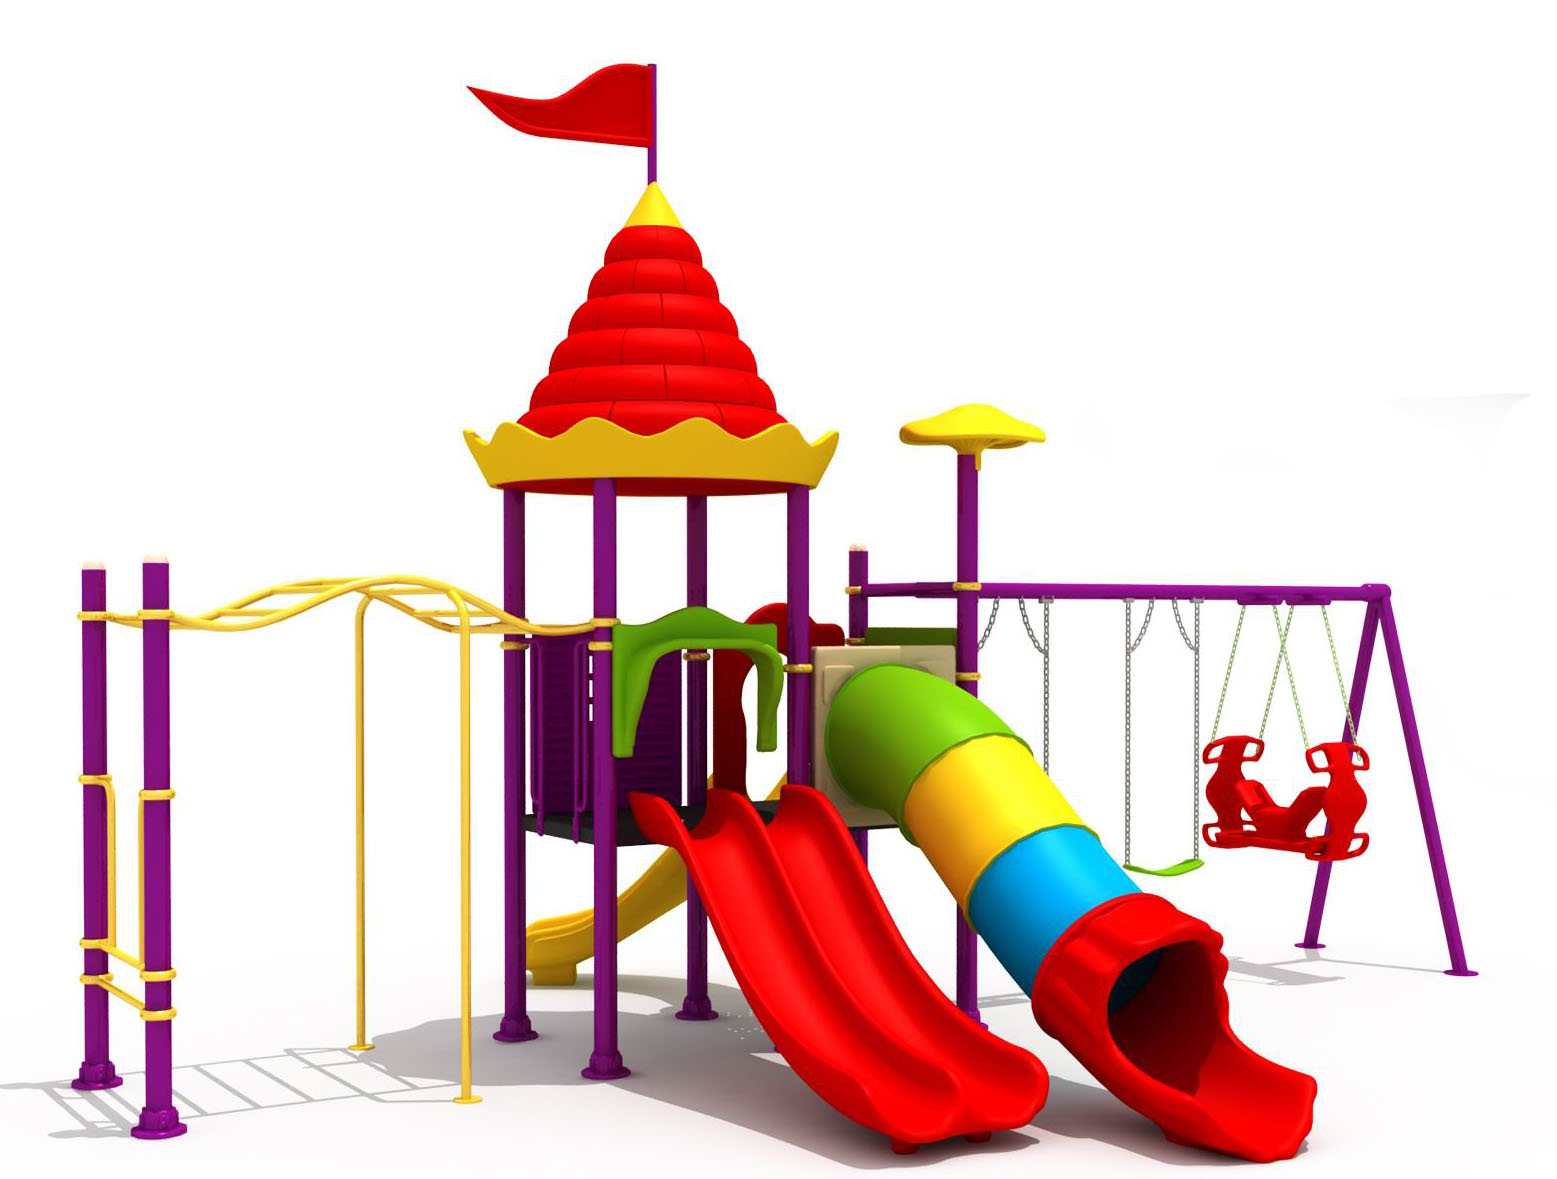 1557x1179 Place Clipart Playground Equipment